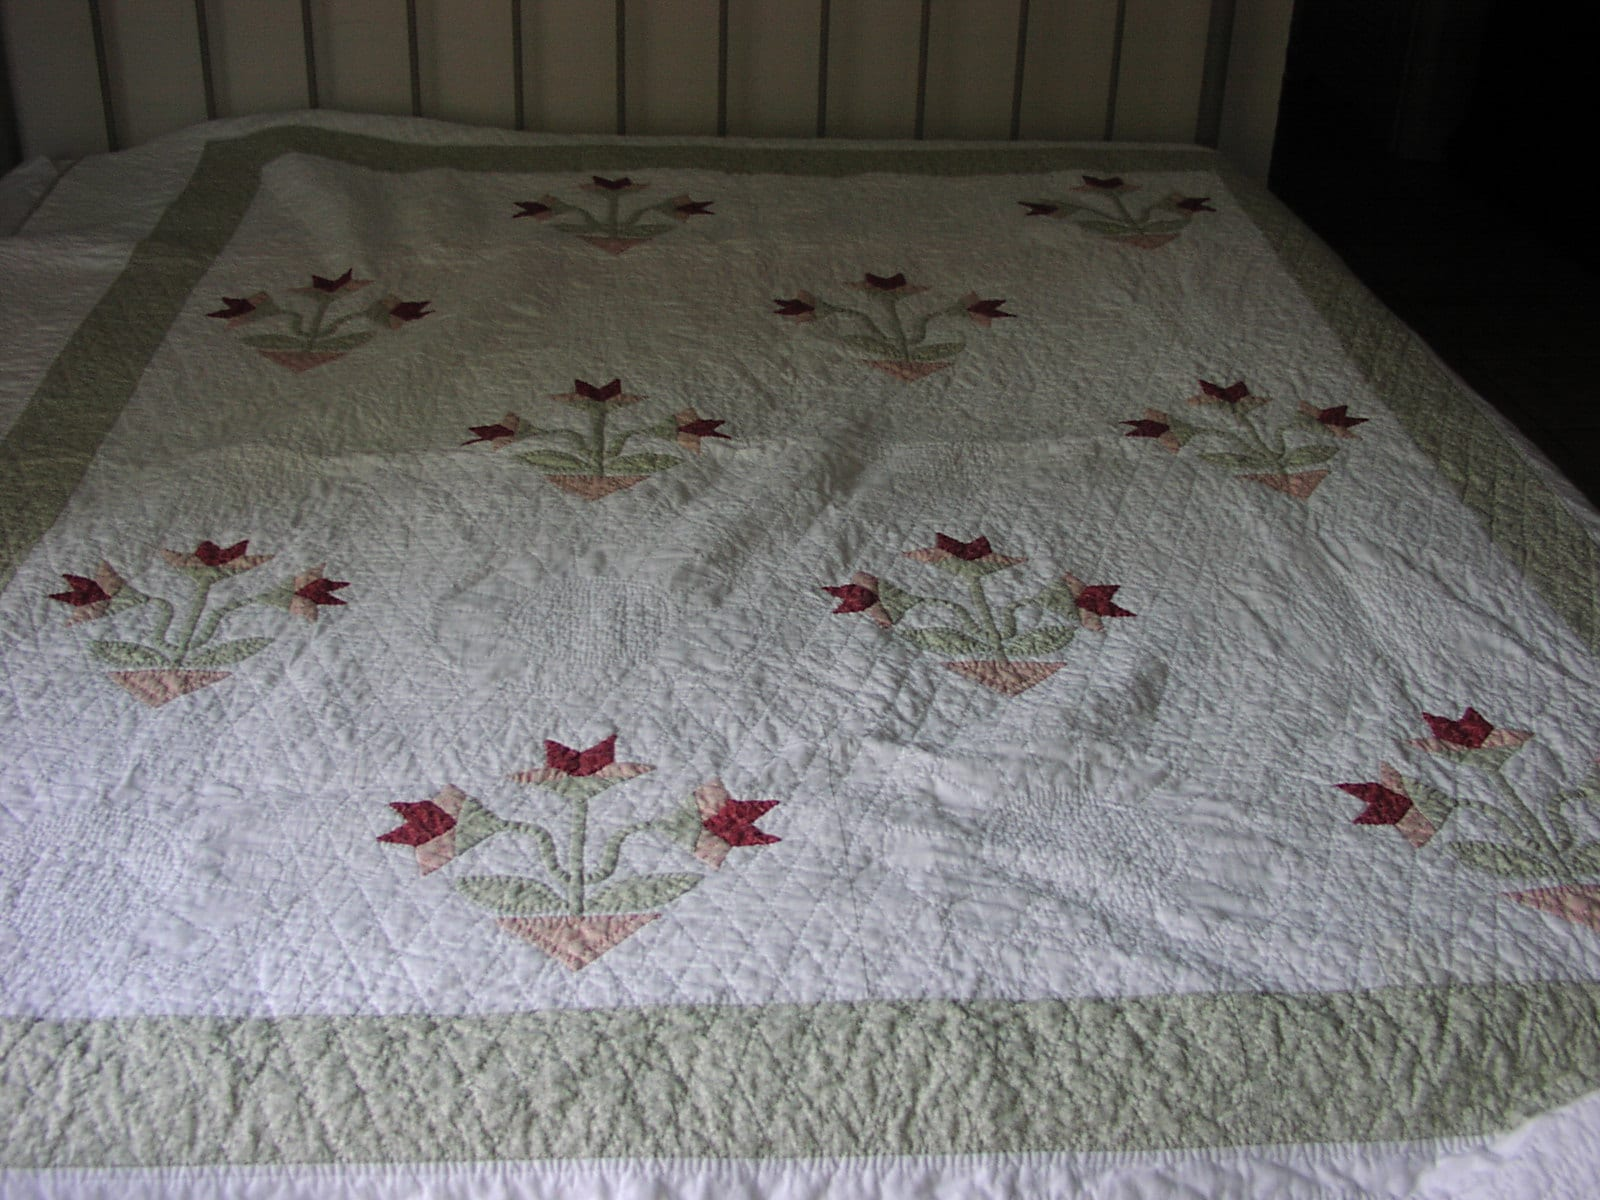 How Many 12 Inch Blocks In A Queen Size Quilt?